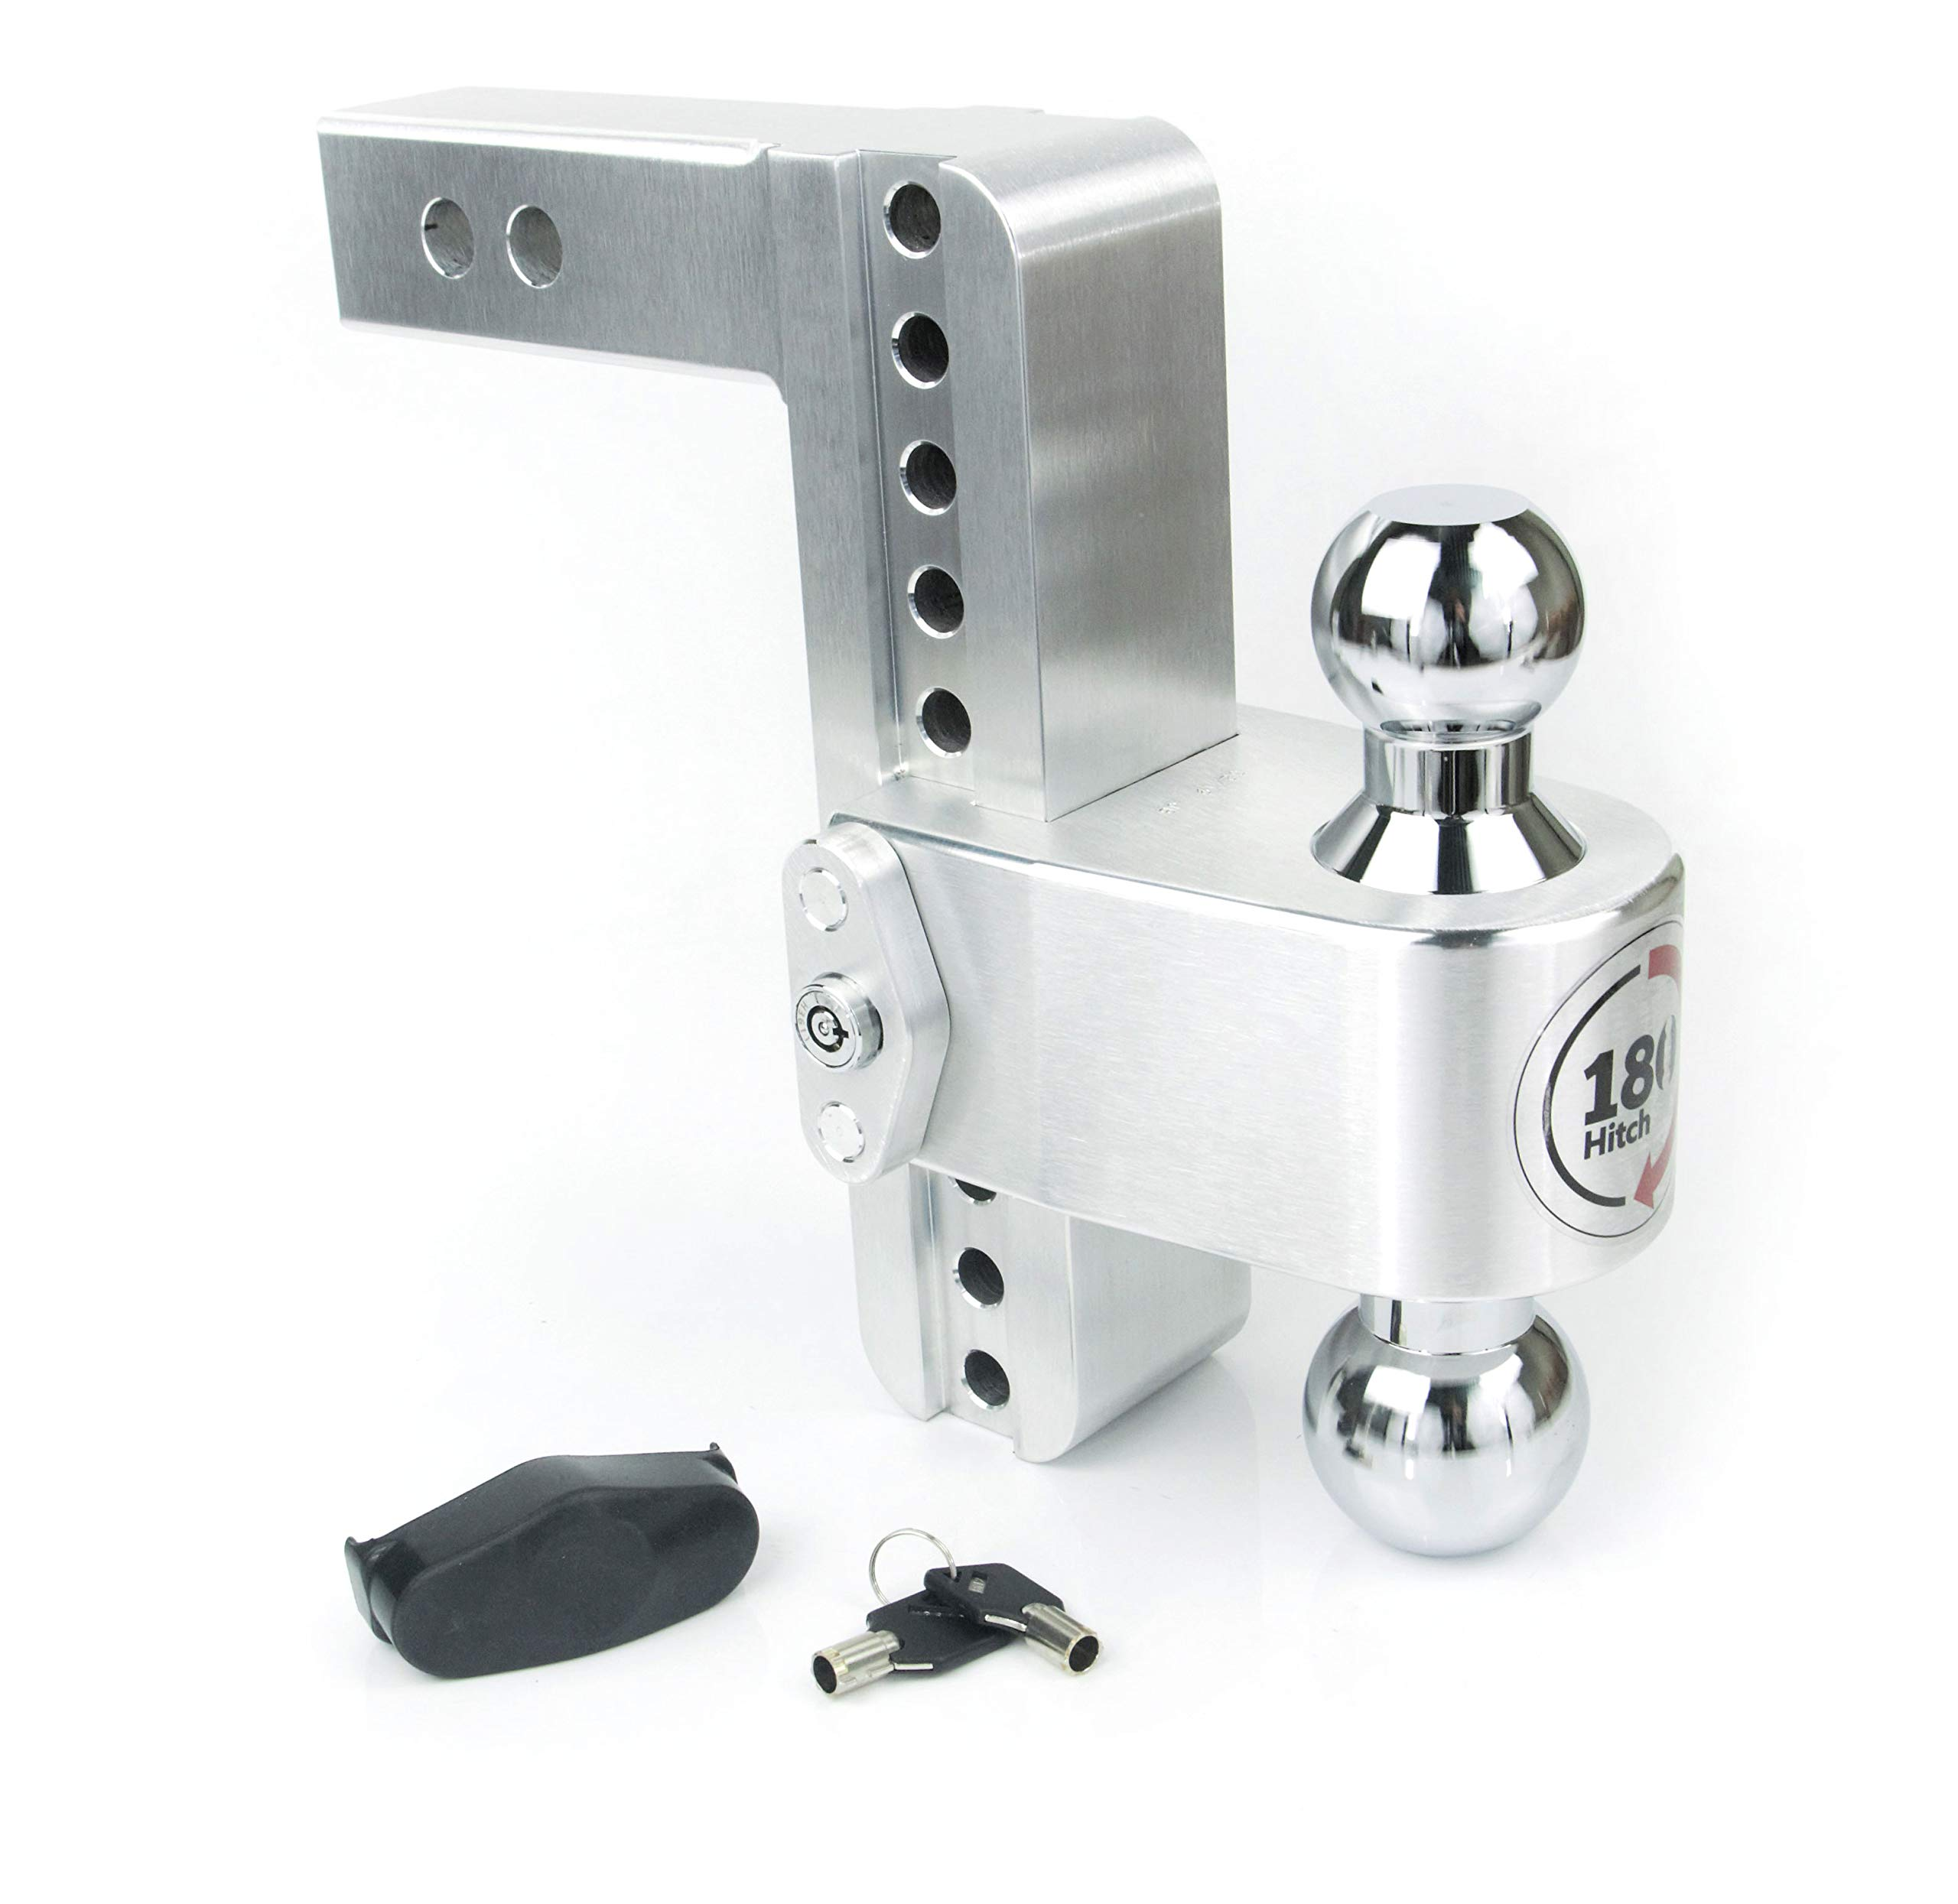 Weigh Safe CTB8-2, 8'' Drop 180 Hitch w/ 2'' Shank/Shaft, Adjustable Aluminum Trailer Hitch & Ball Mount, Chrome Plated Steel Combo Ball (2'' & 2-5/16'') and a Double-pin Key Lock